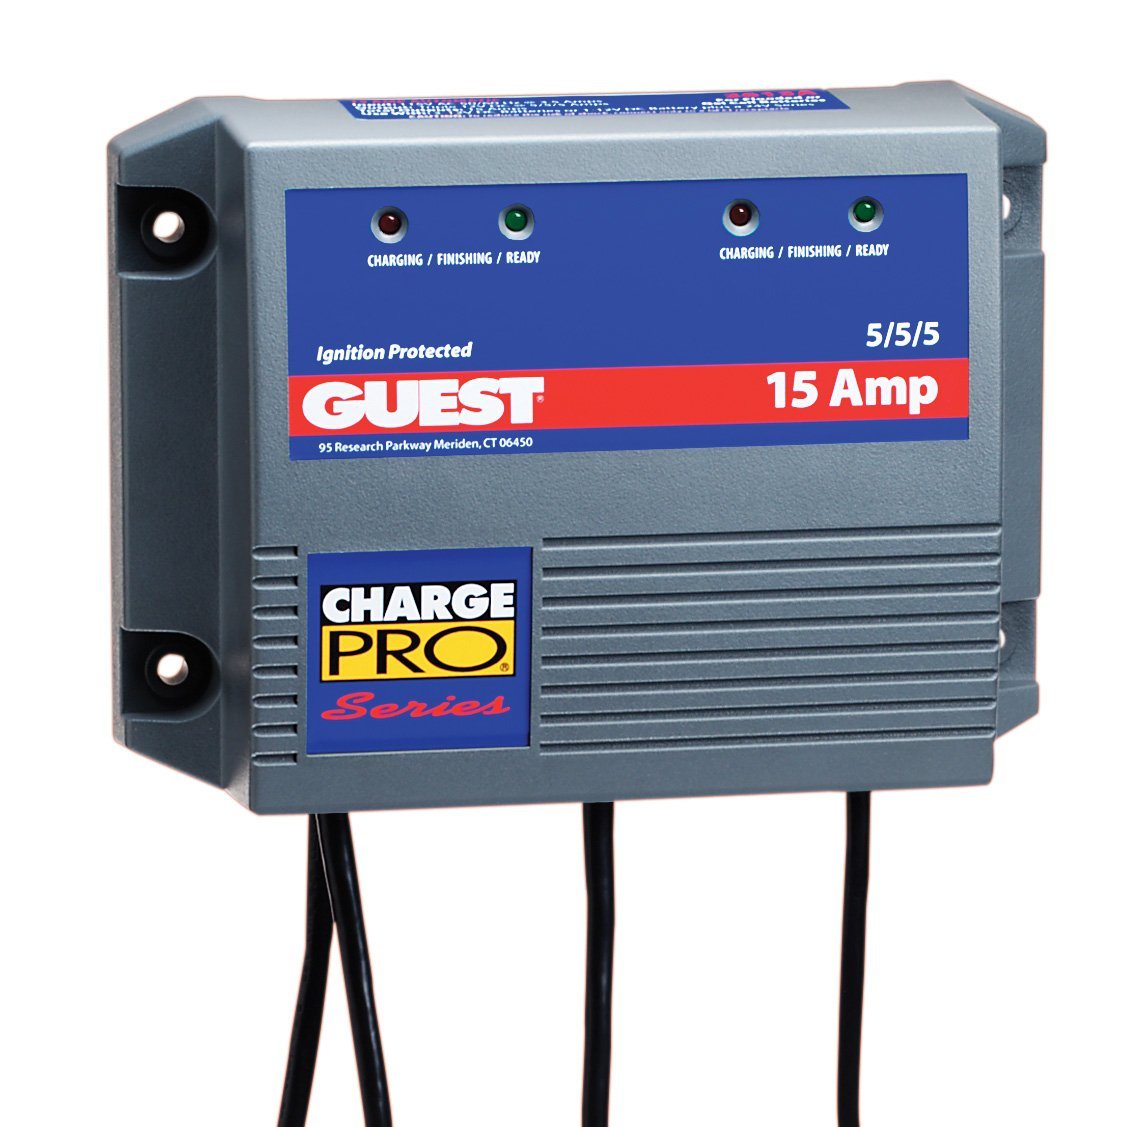 small resolution of 15 amp triple output charge pro battery charger 15a 5 5 5 12 24 guest battery charger wiring diagram